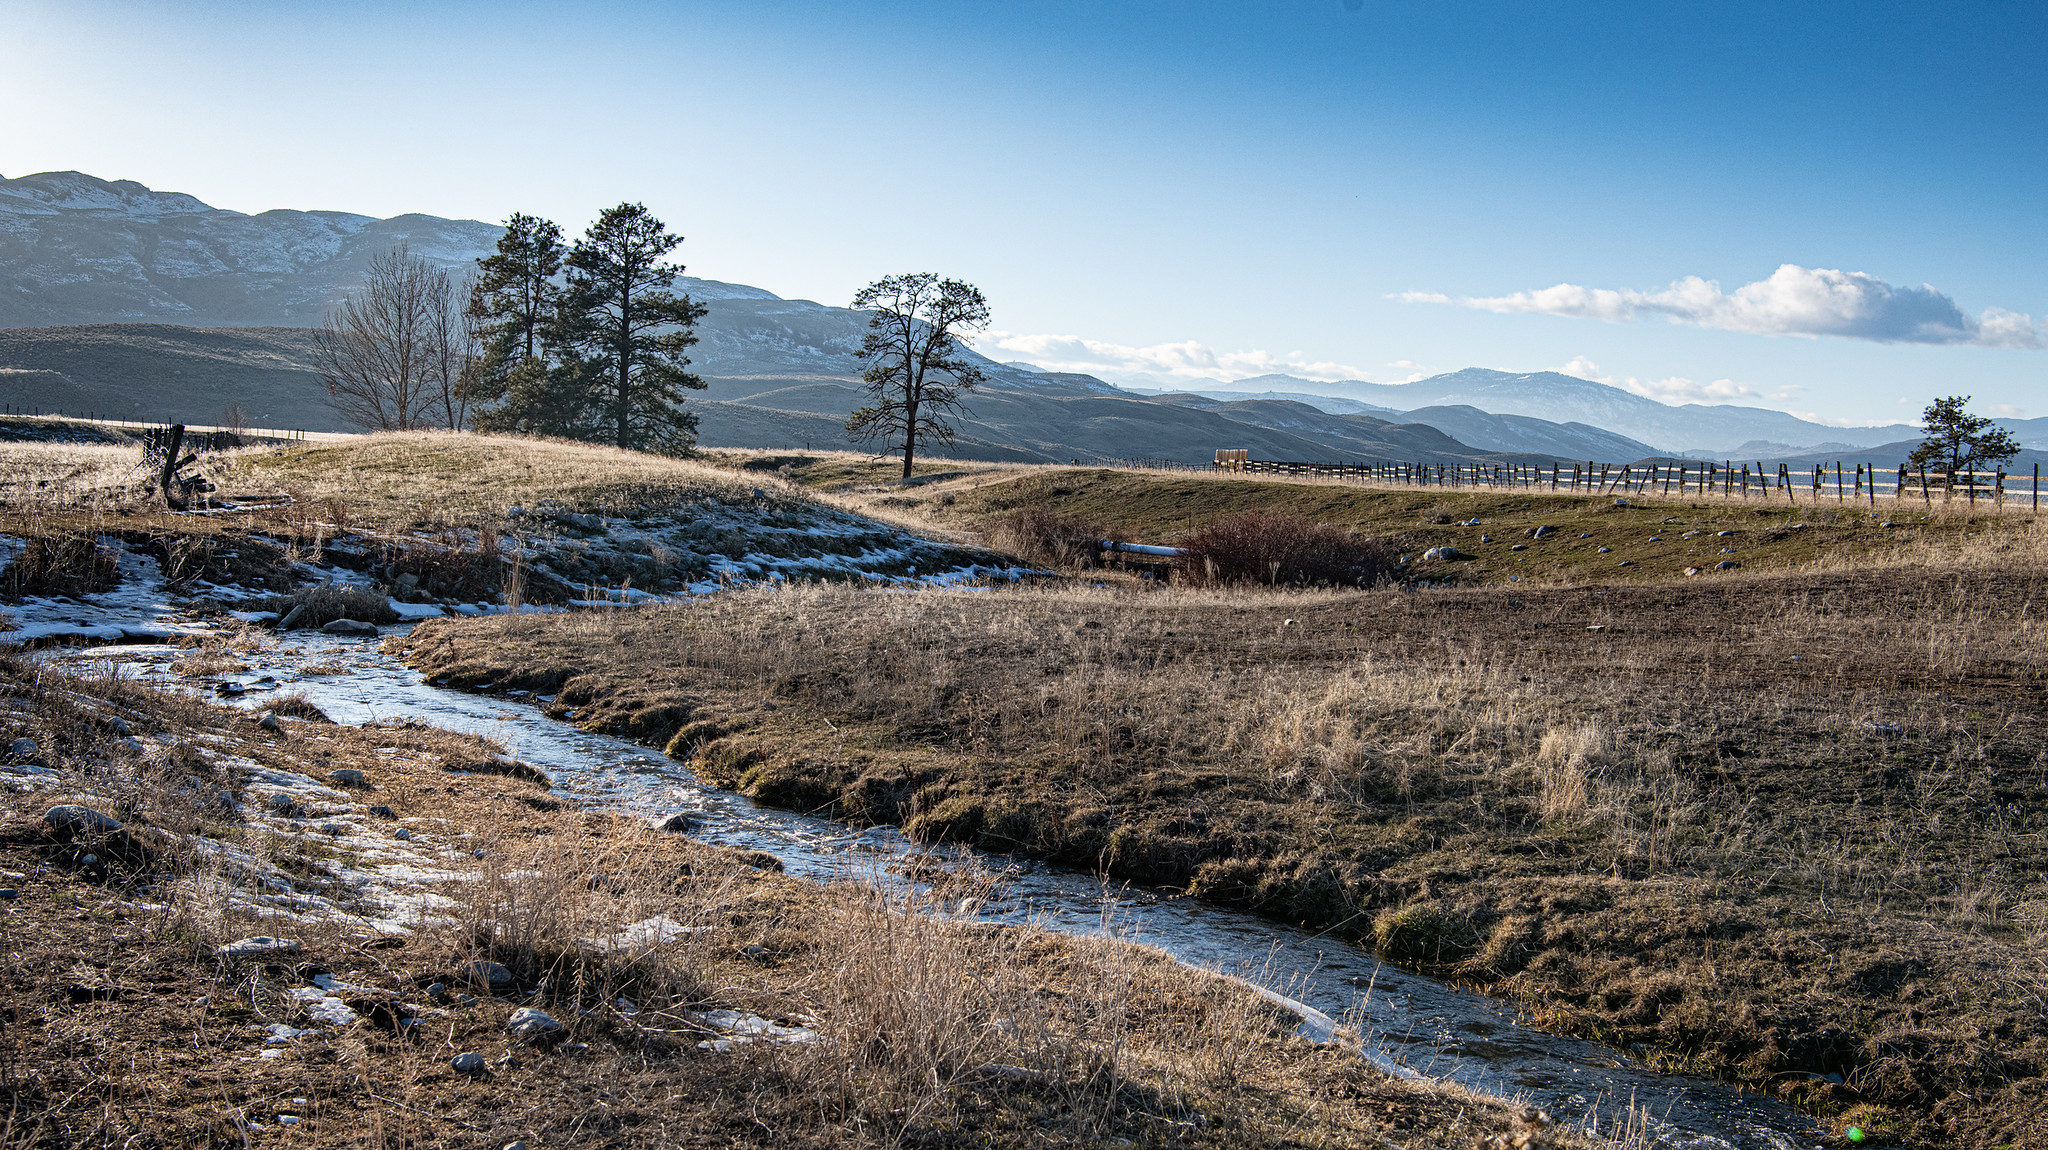 Wintery view of grasslands and Antoine Creek, a tributary of the Okanogan River, with mountains in the background.